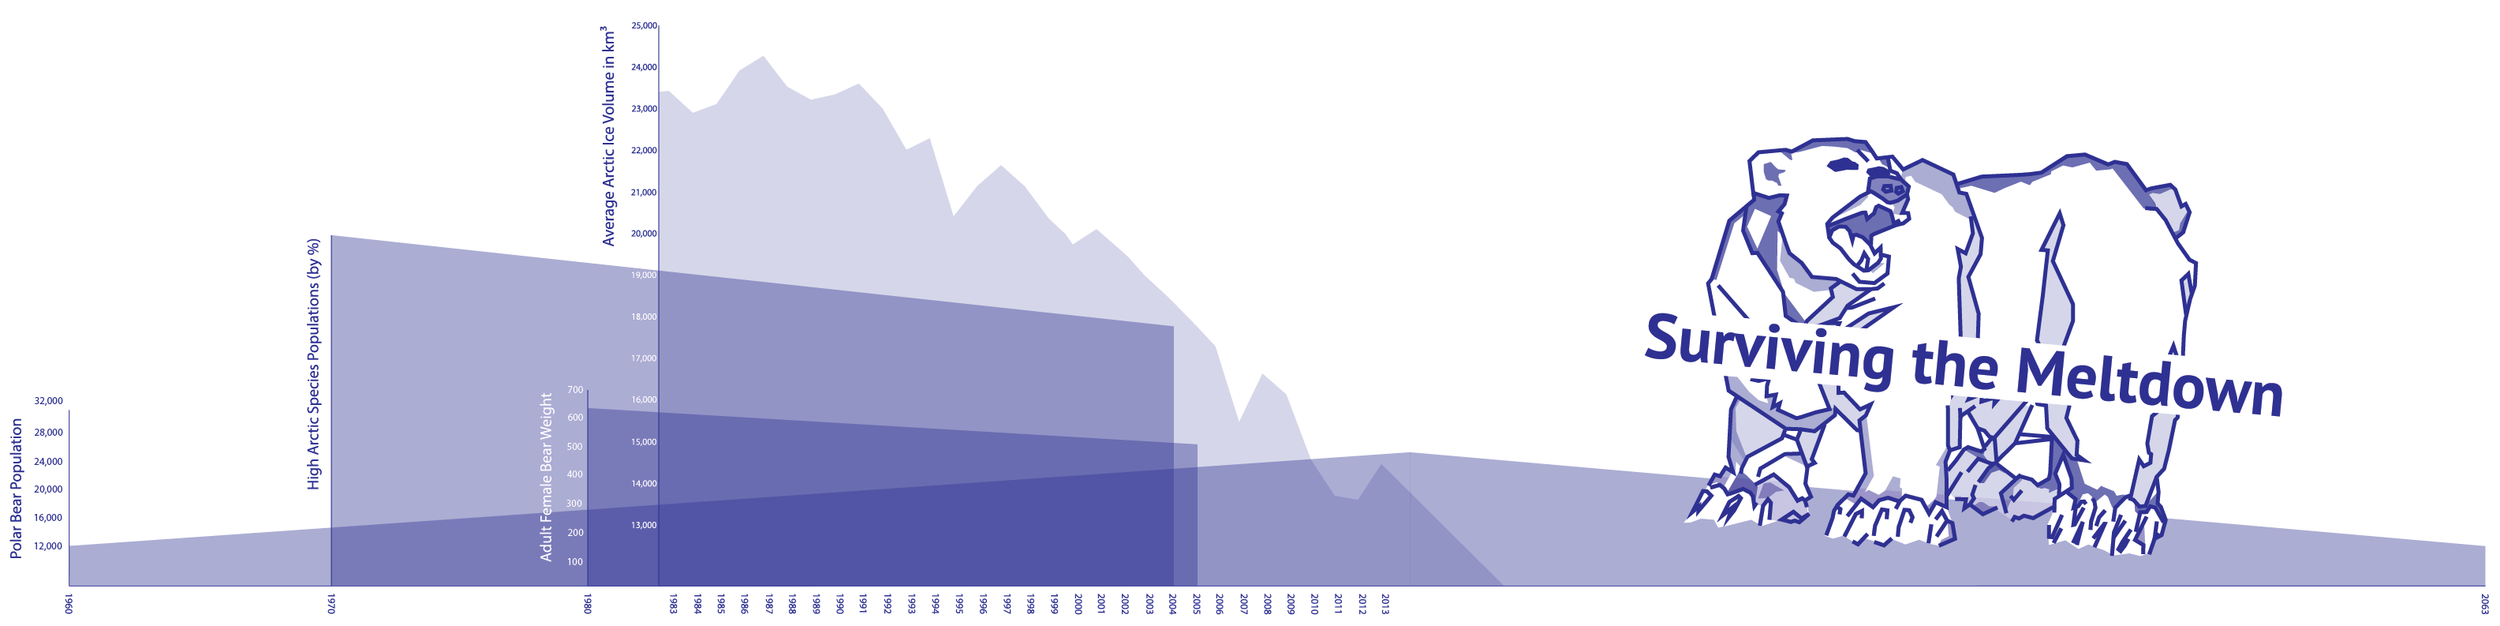 OverlayGraph 44-01.png